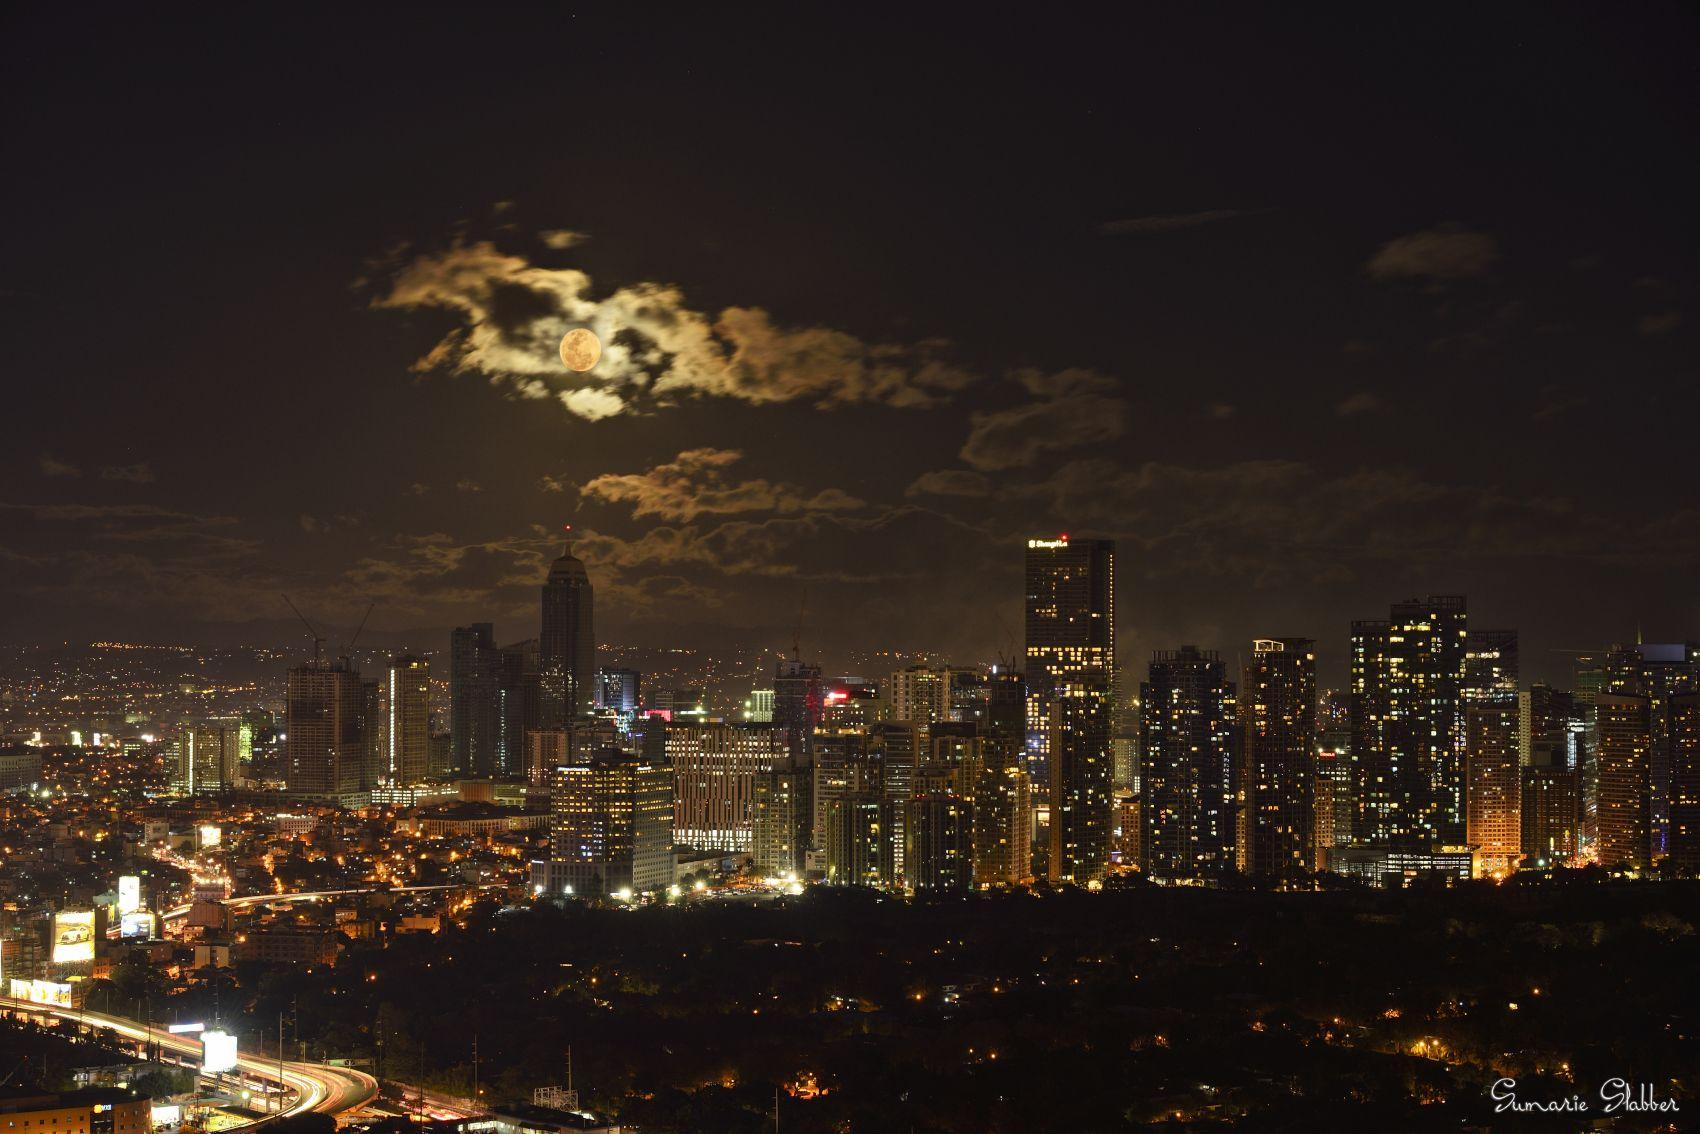 Wallpaper : sumarieslabber, city, Moon, clouds, Manila ...